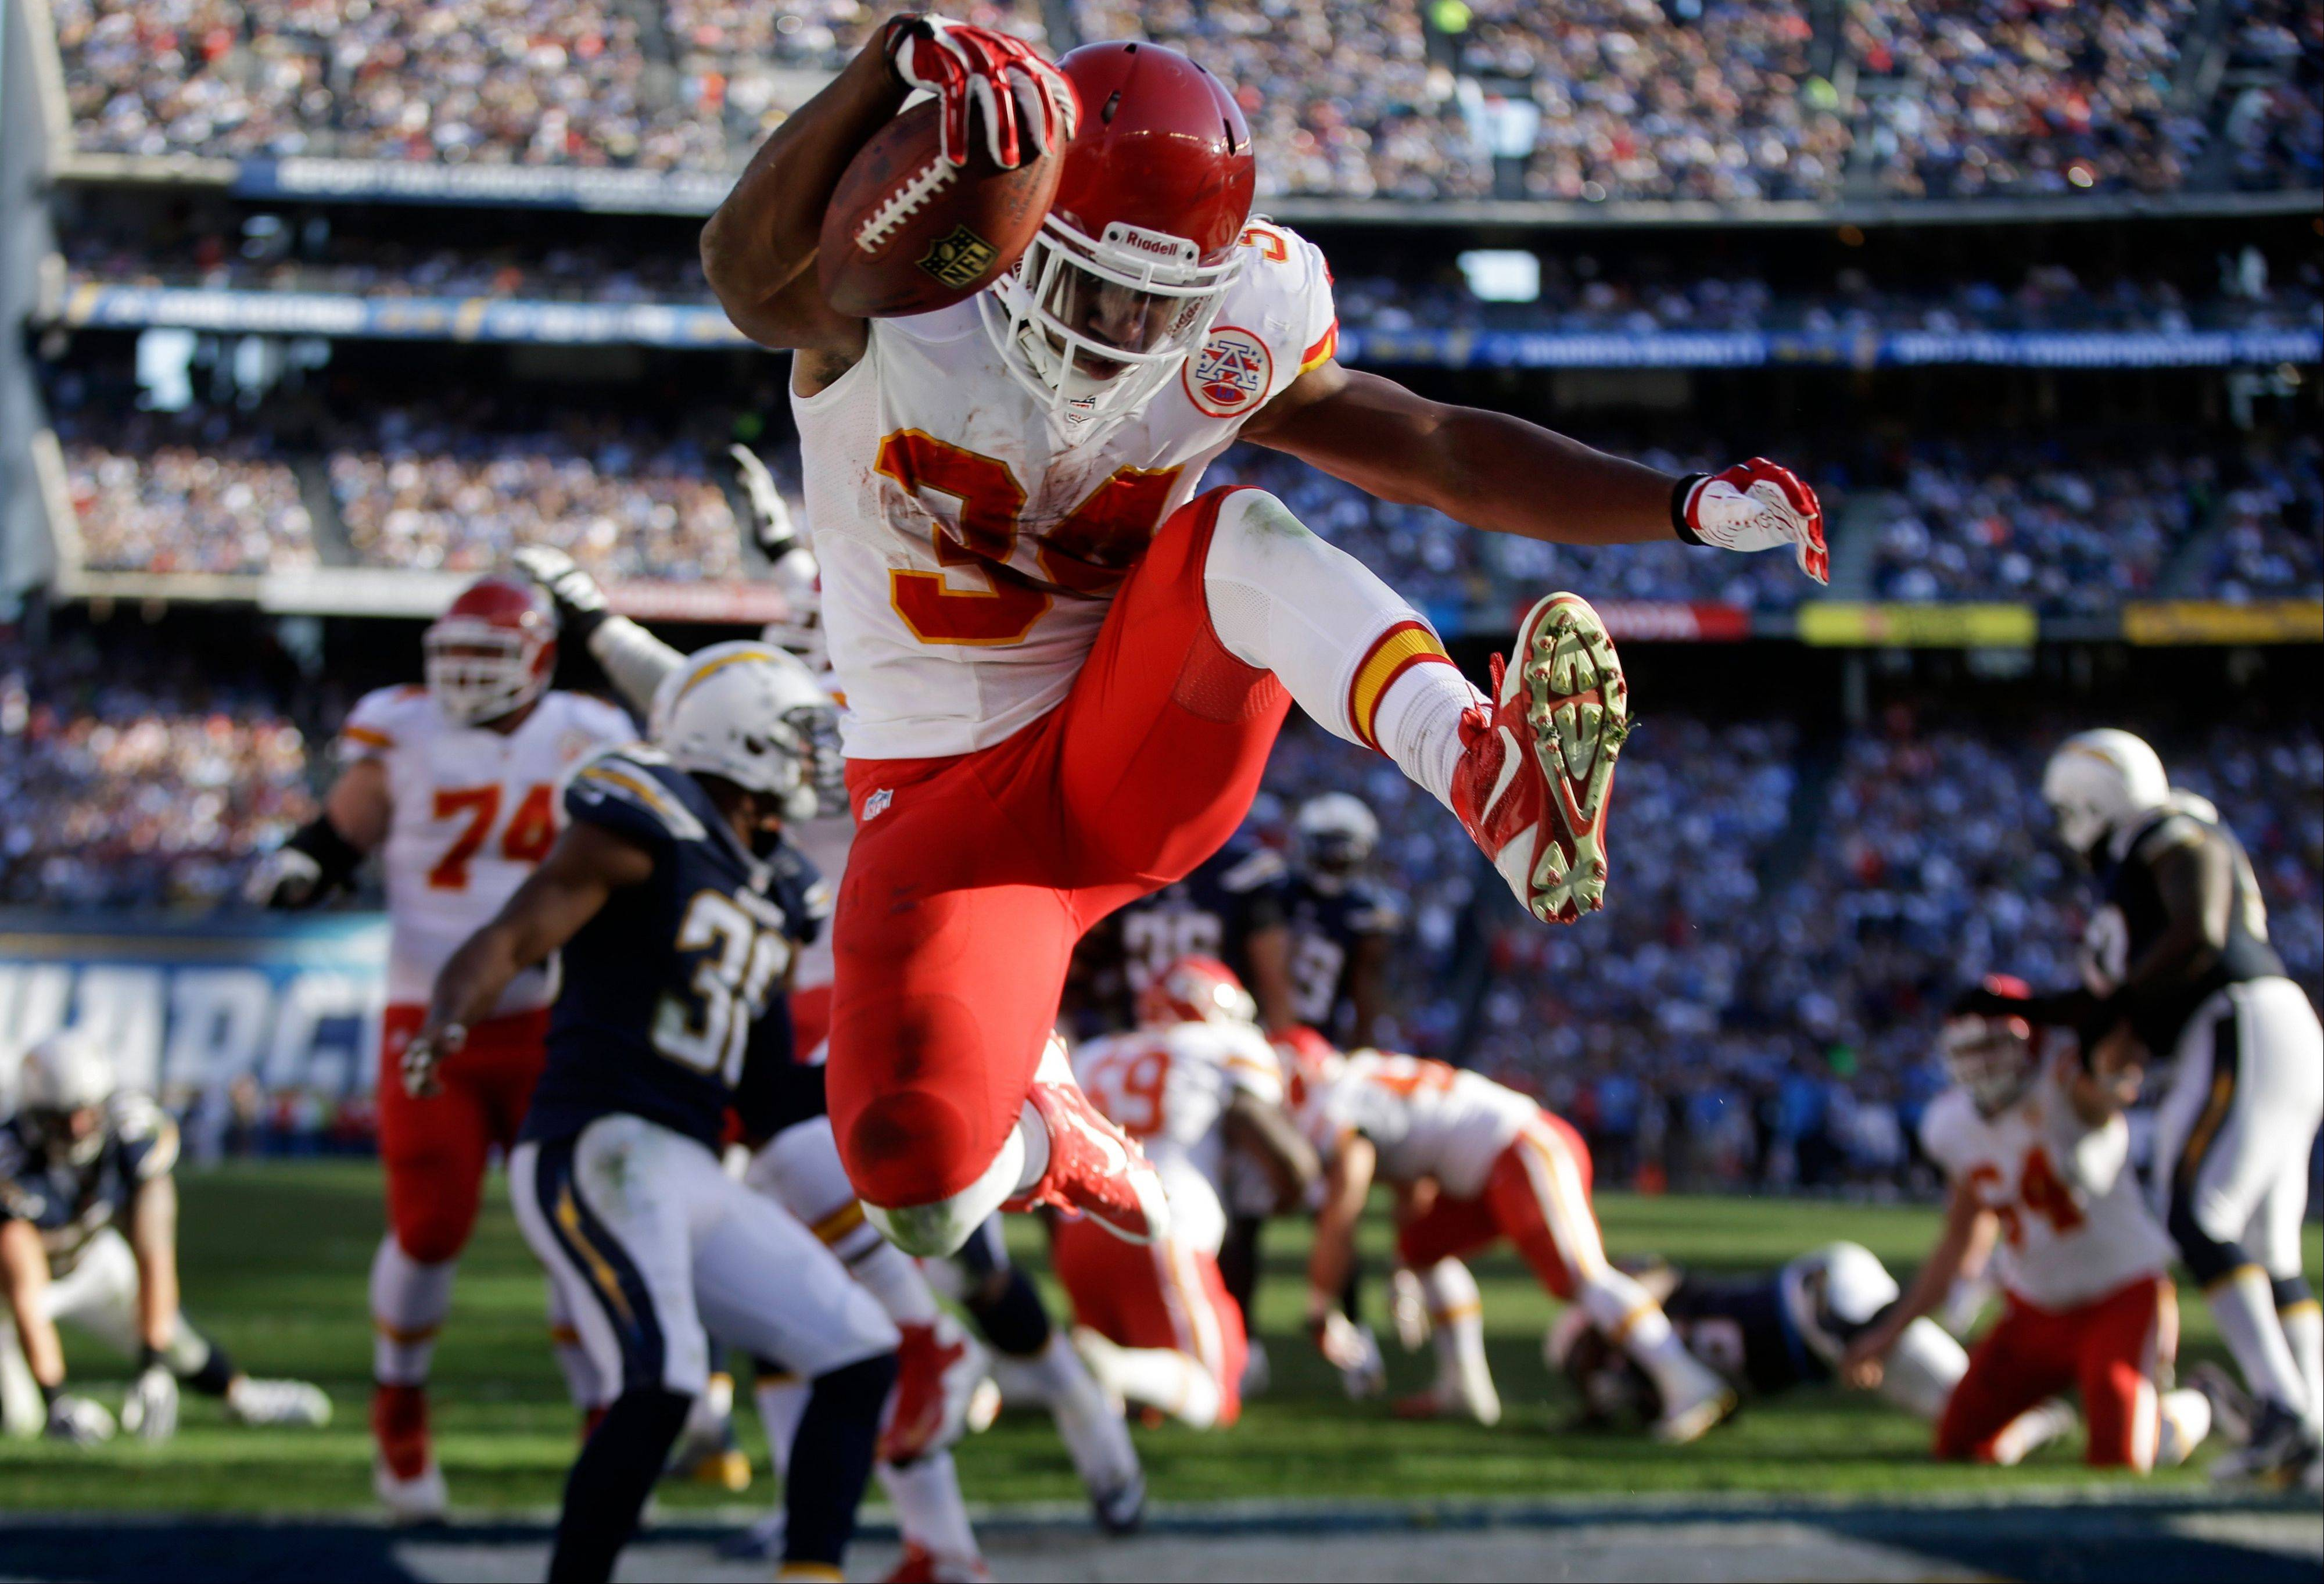 Kansas City Chiefs reserve running back Knile Davis jumps in the end zone as he scores a touchdown against the Chargers during the first half of Sunday�s game in San Diego.